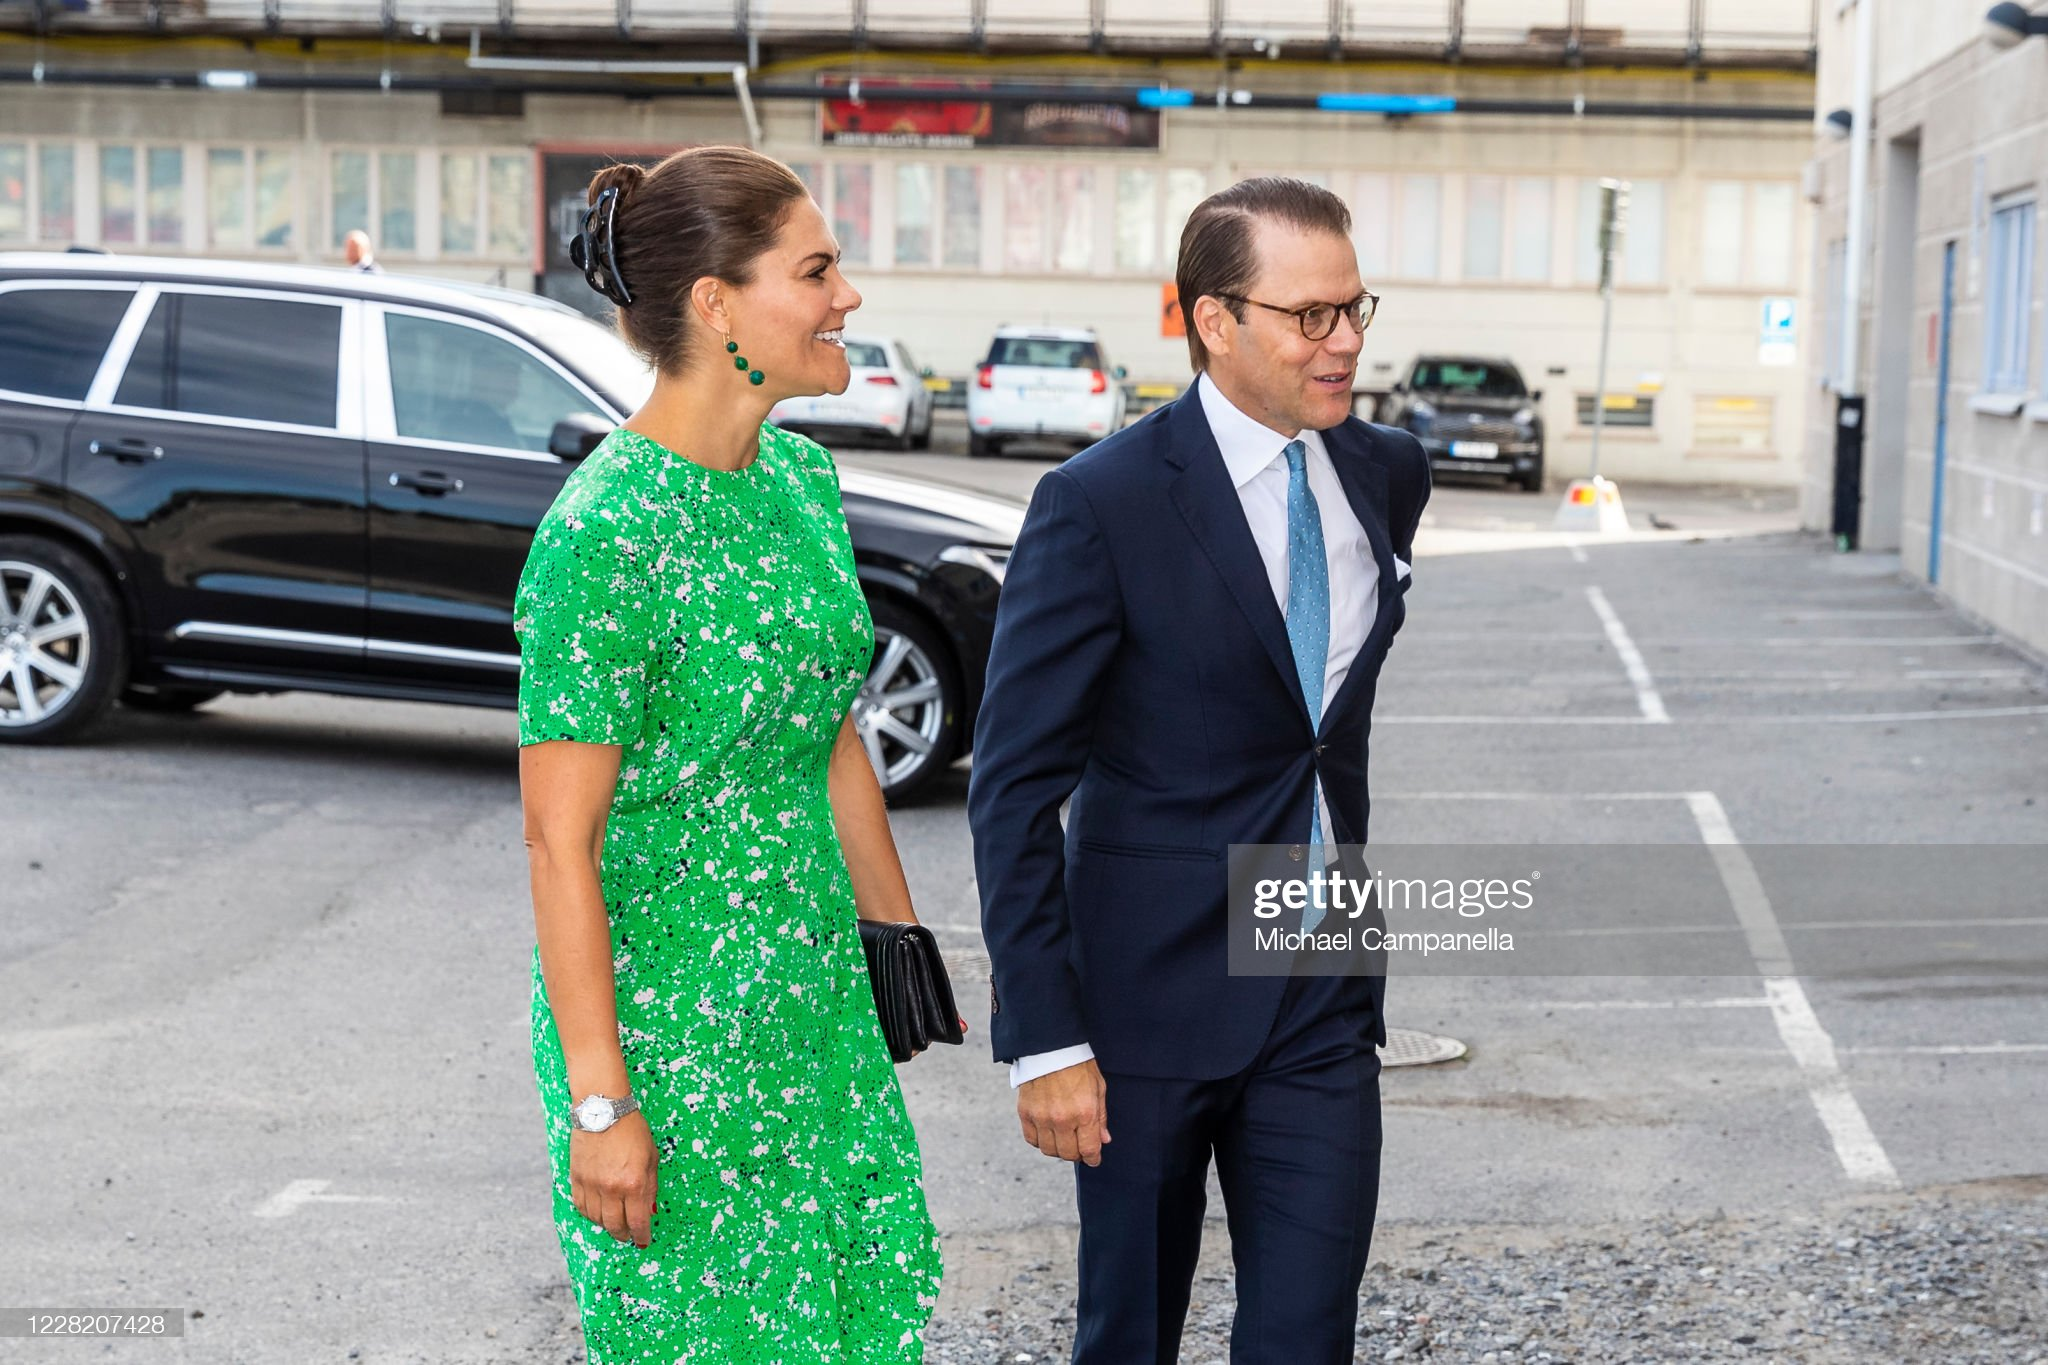 crown-princess-victoria-and-prince-daniel-of-sweden-visit-the-artist-picture-id1228207428